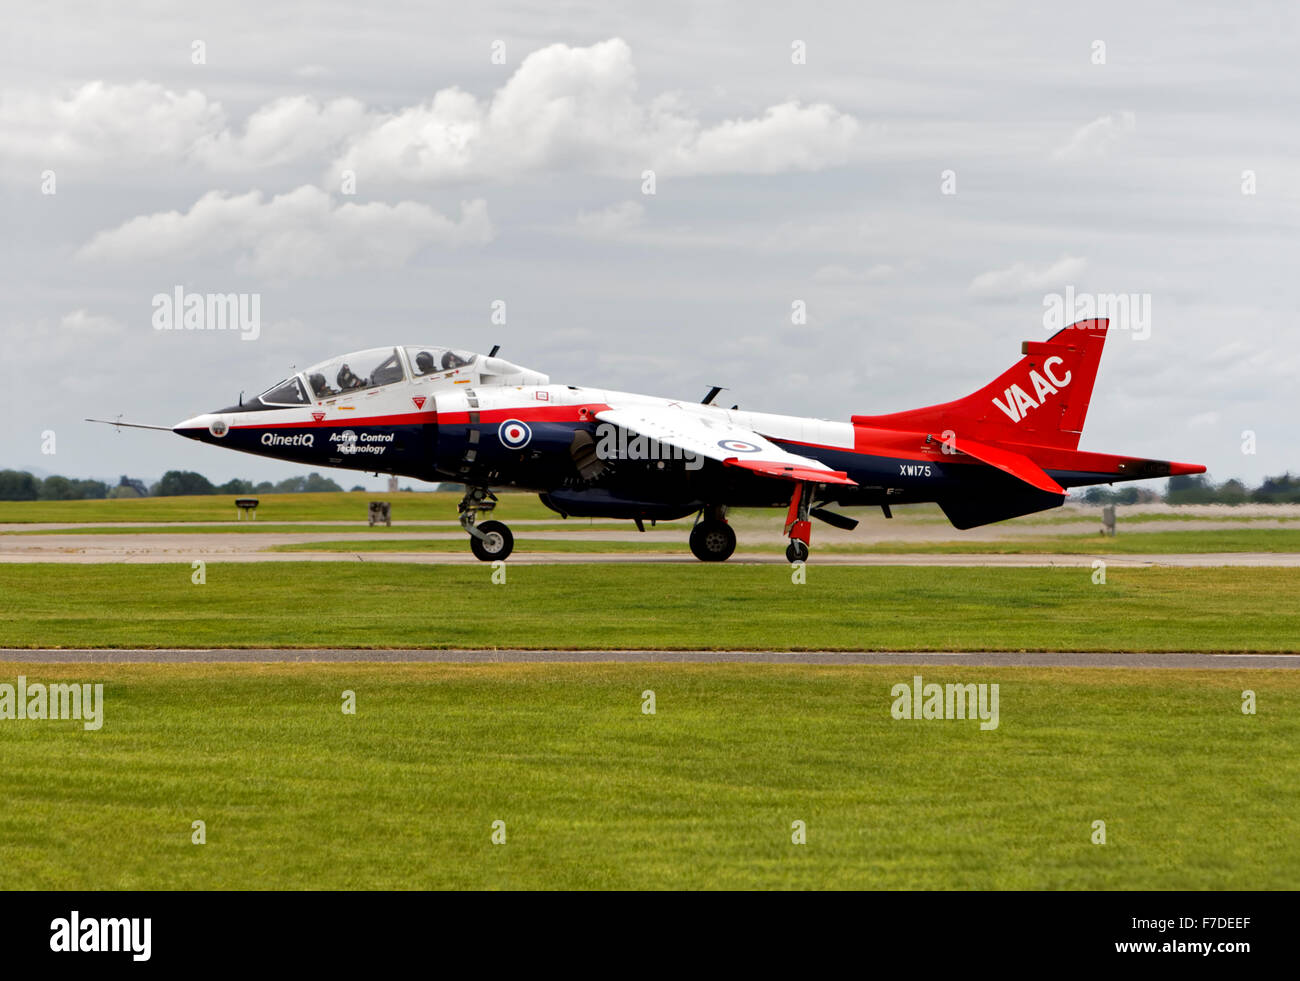 A QinetiQ VAAC Harrier T4, XW175, lands at the Royal Naval Air Station Yeovilton in Somerset for the start of the - Stock Image